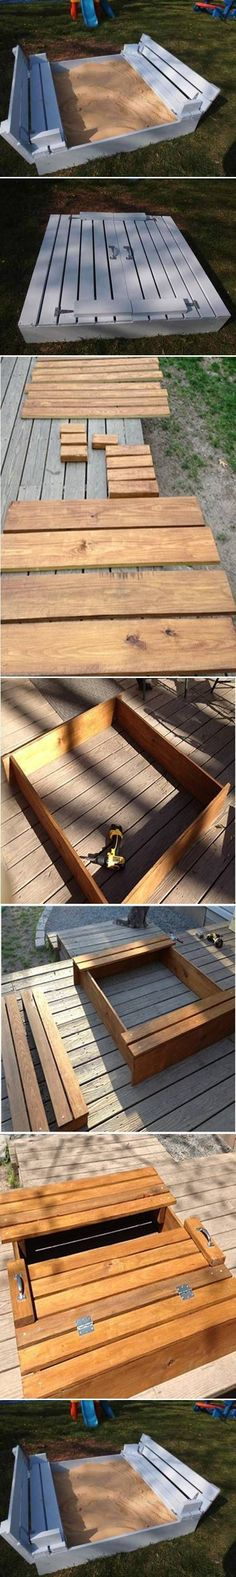 DIY Sandbox with cover and seats